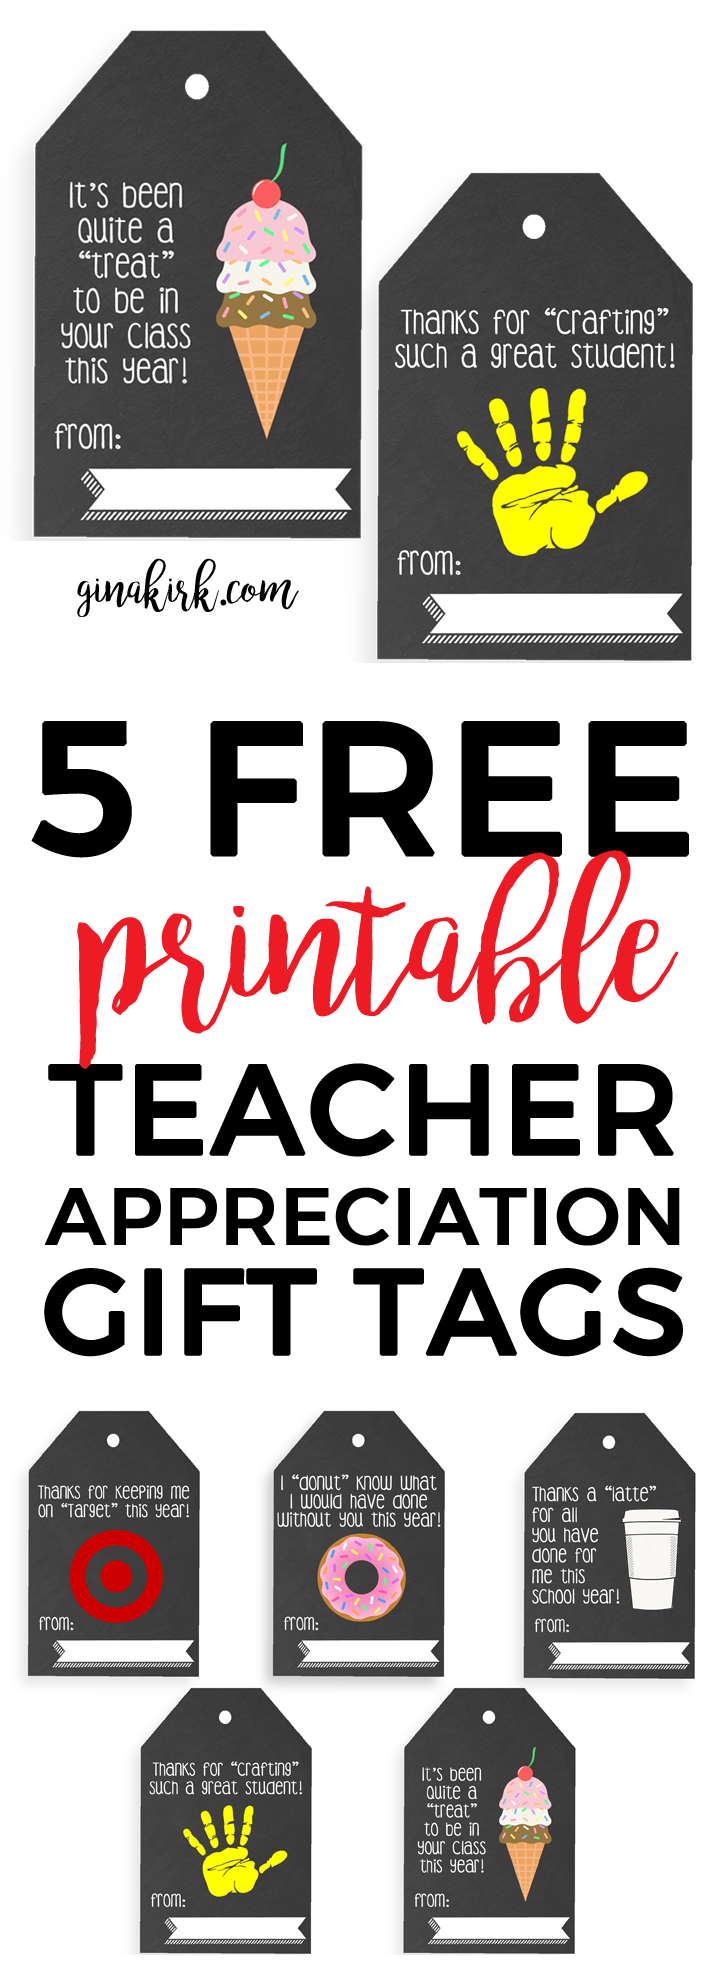 Peaceful image with regard to printable teacher gift tags